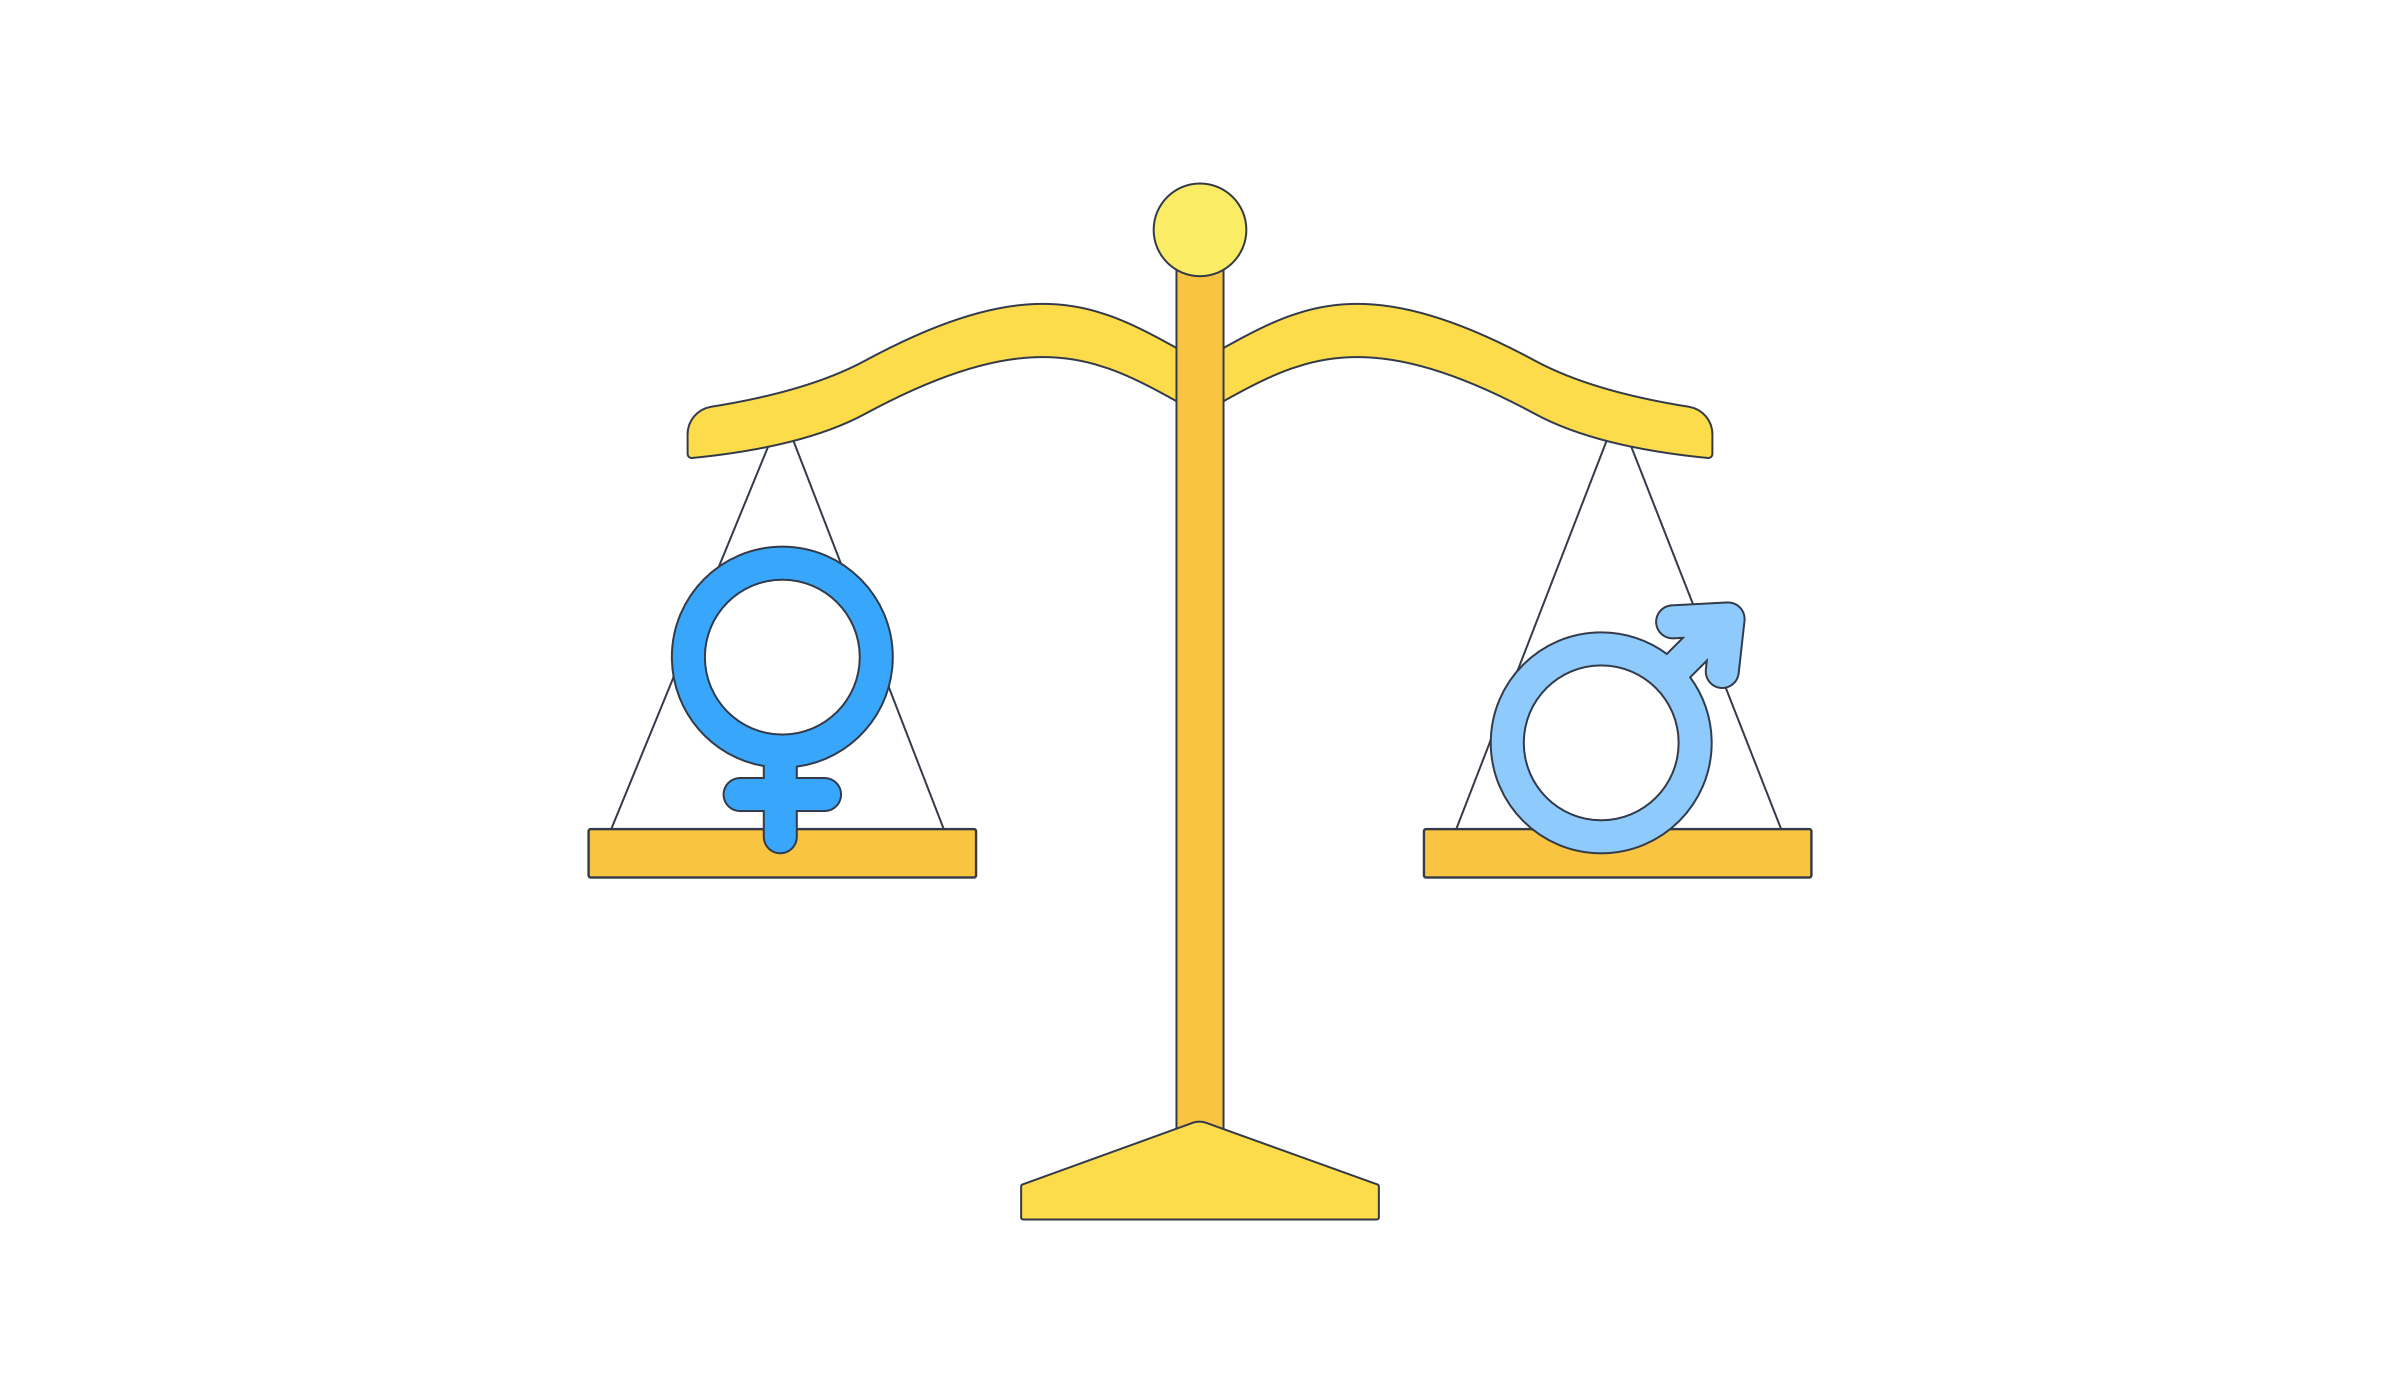 Illustration of scale of justice with gender symbols balancing